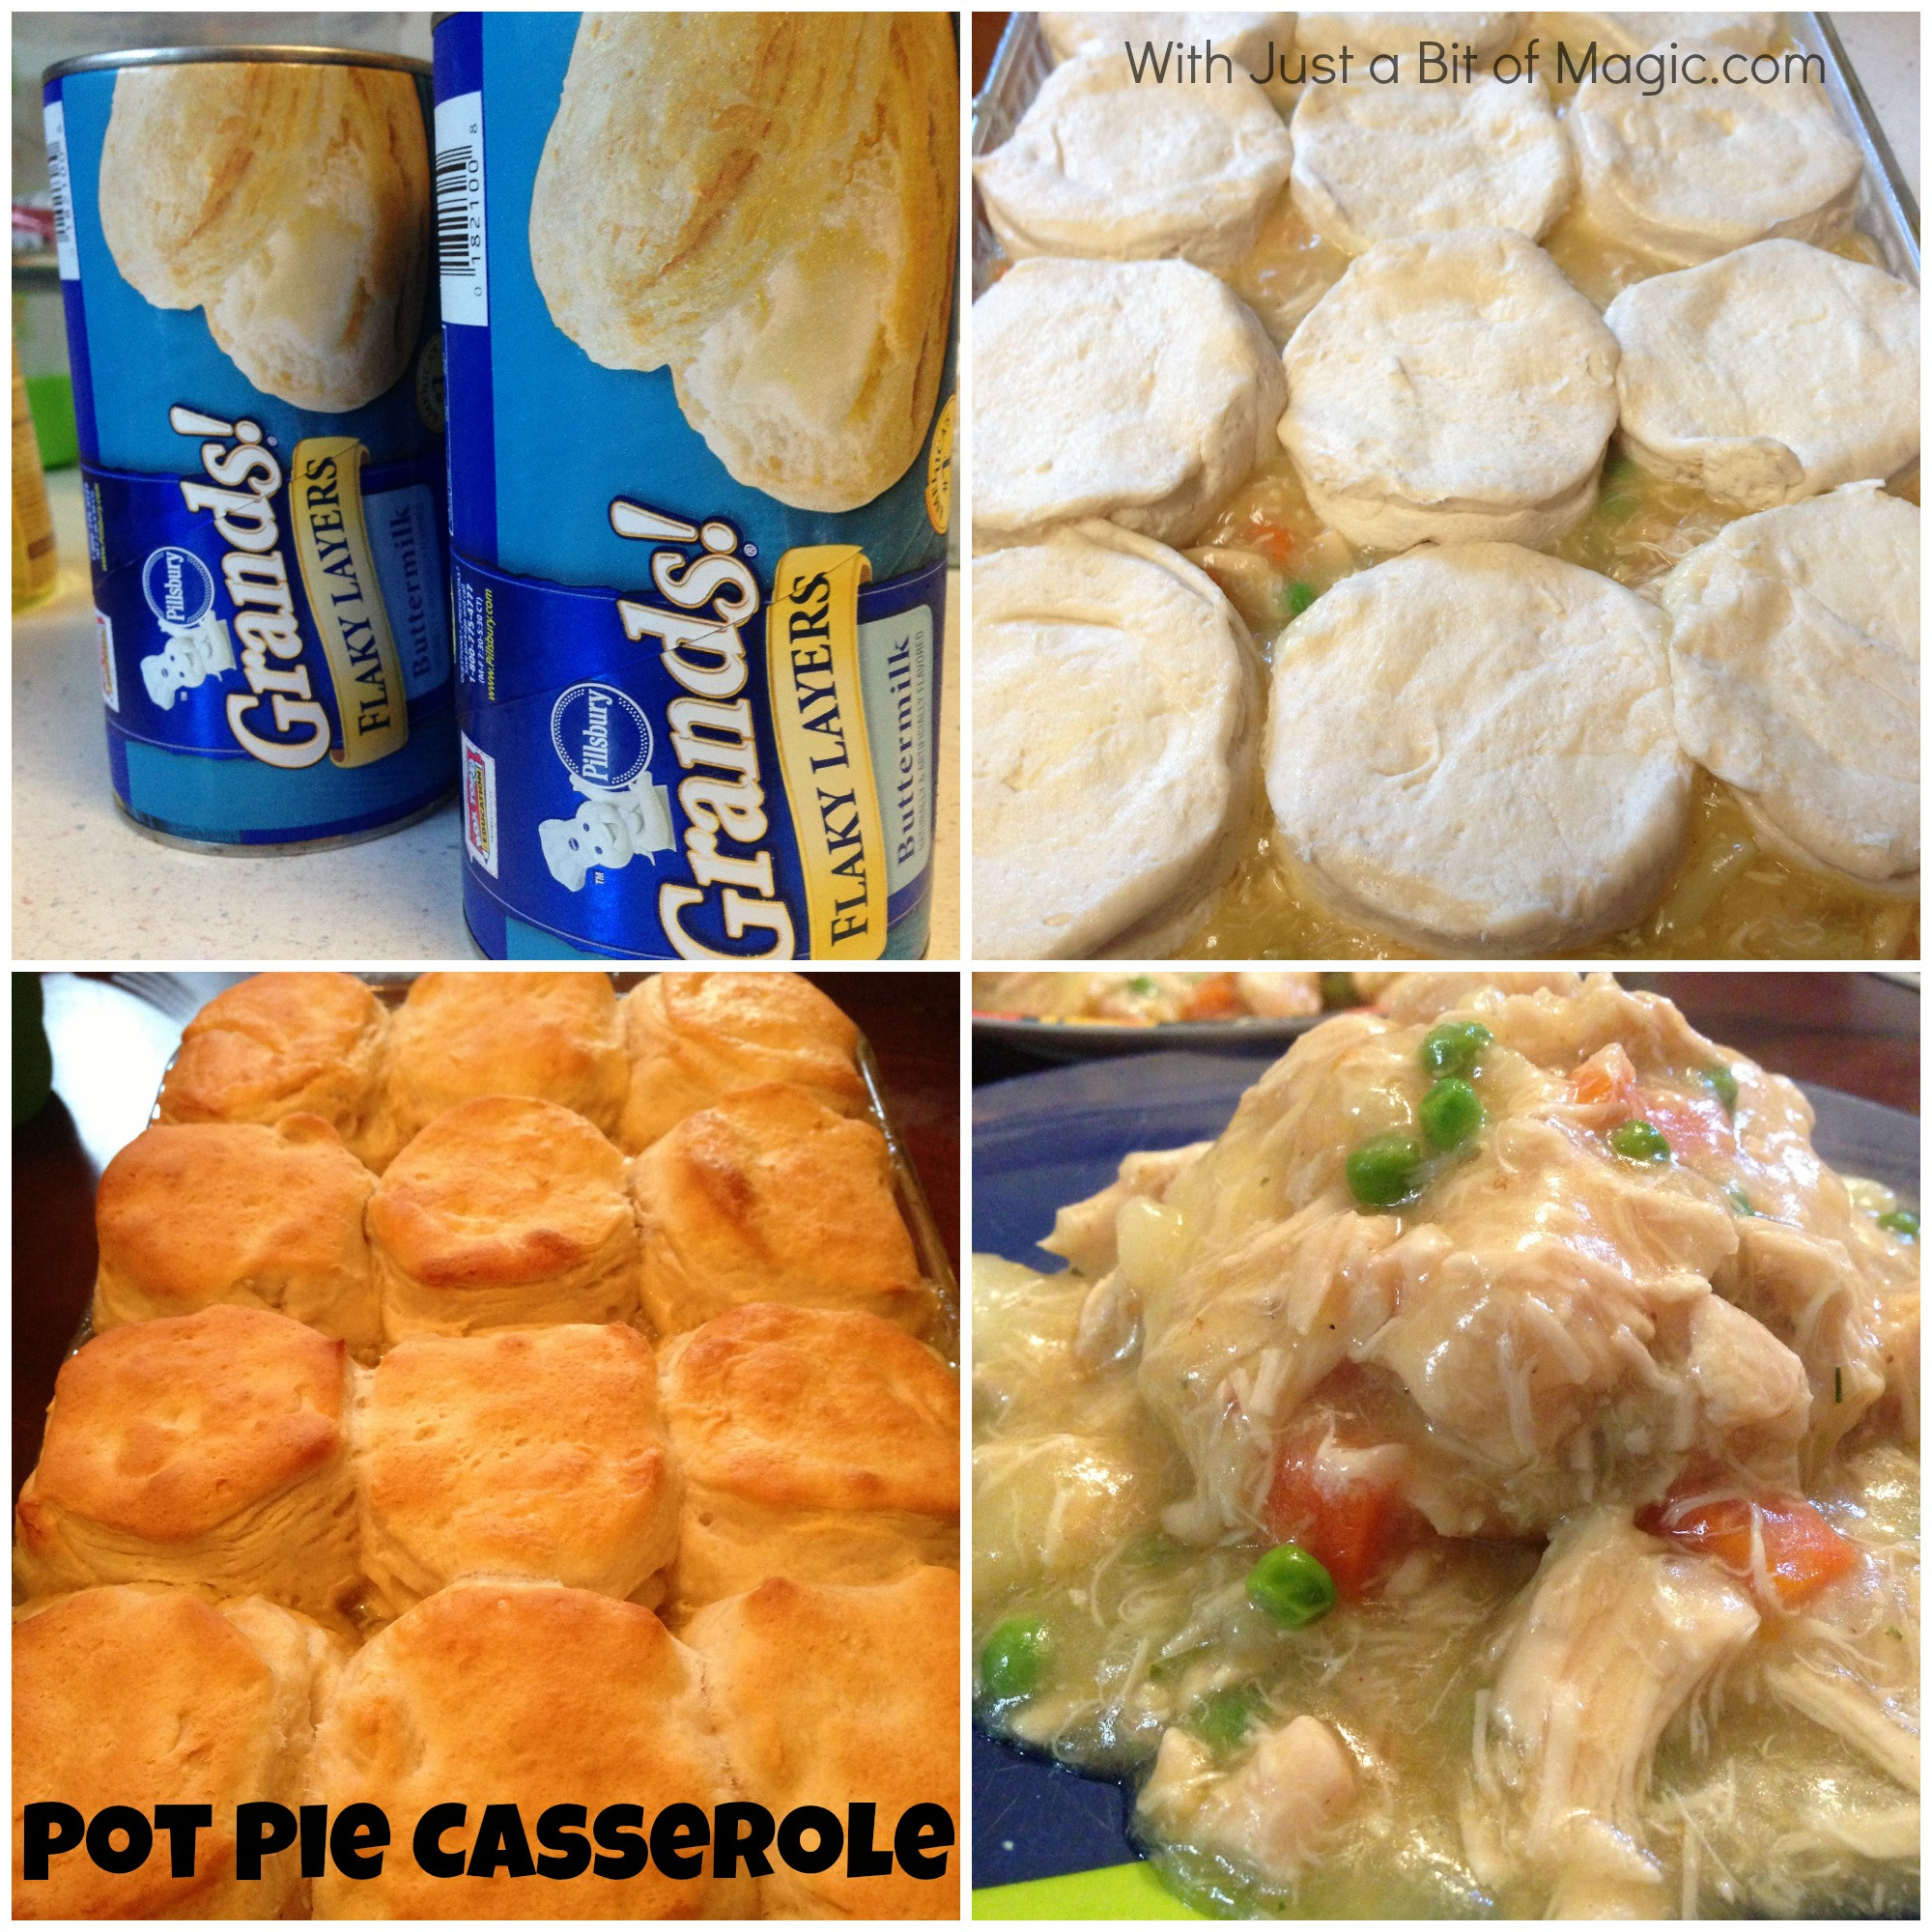 Chicken Pot Pie Pillsbury  Grands Biscuits Archives With Just a Bit of Magic